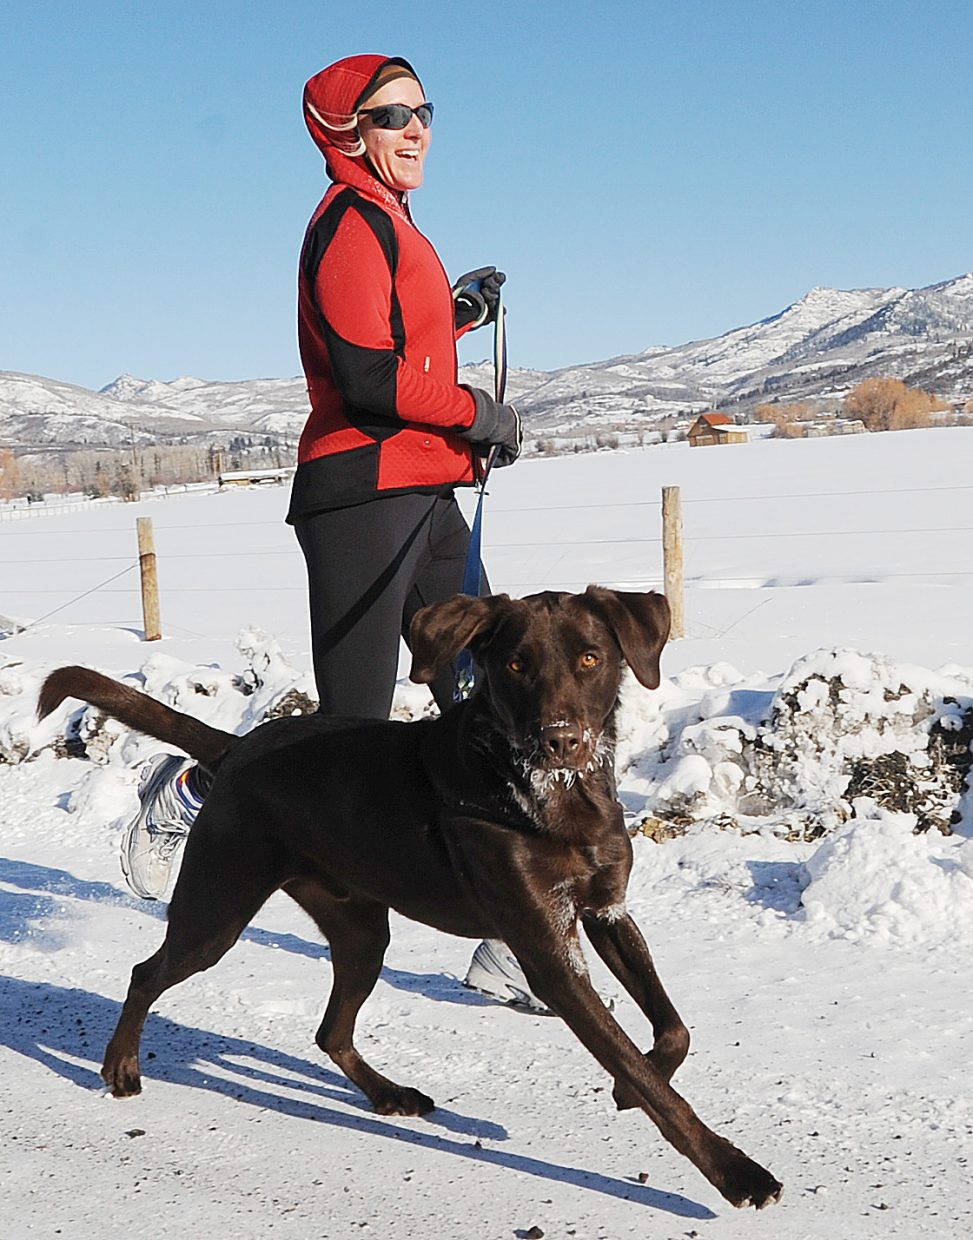 Beth Egelhoff and her dog, Oreo, run in Thursday's Turkey Trot race in Steamboat Springs.